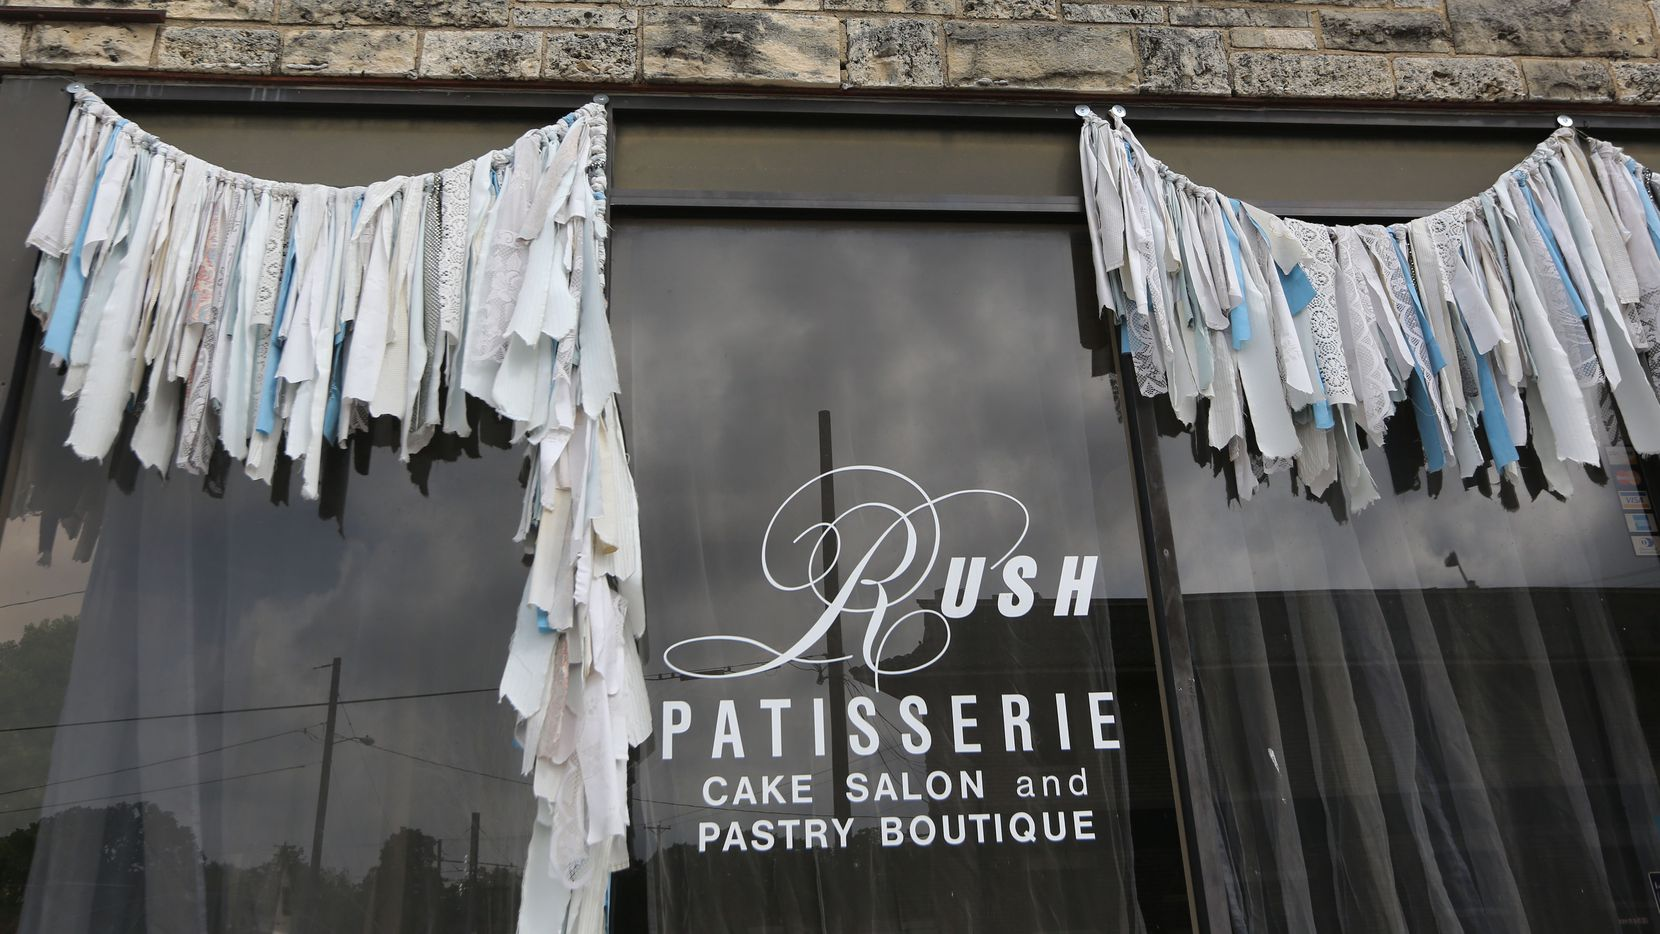 Rush Patisserie, photographed on Thursday, April 13, 2017, was located along the Dallas streetcar route in Oak Cliff near the Beckley Avenue and 6th Street stops.